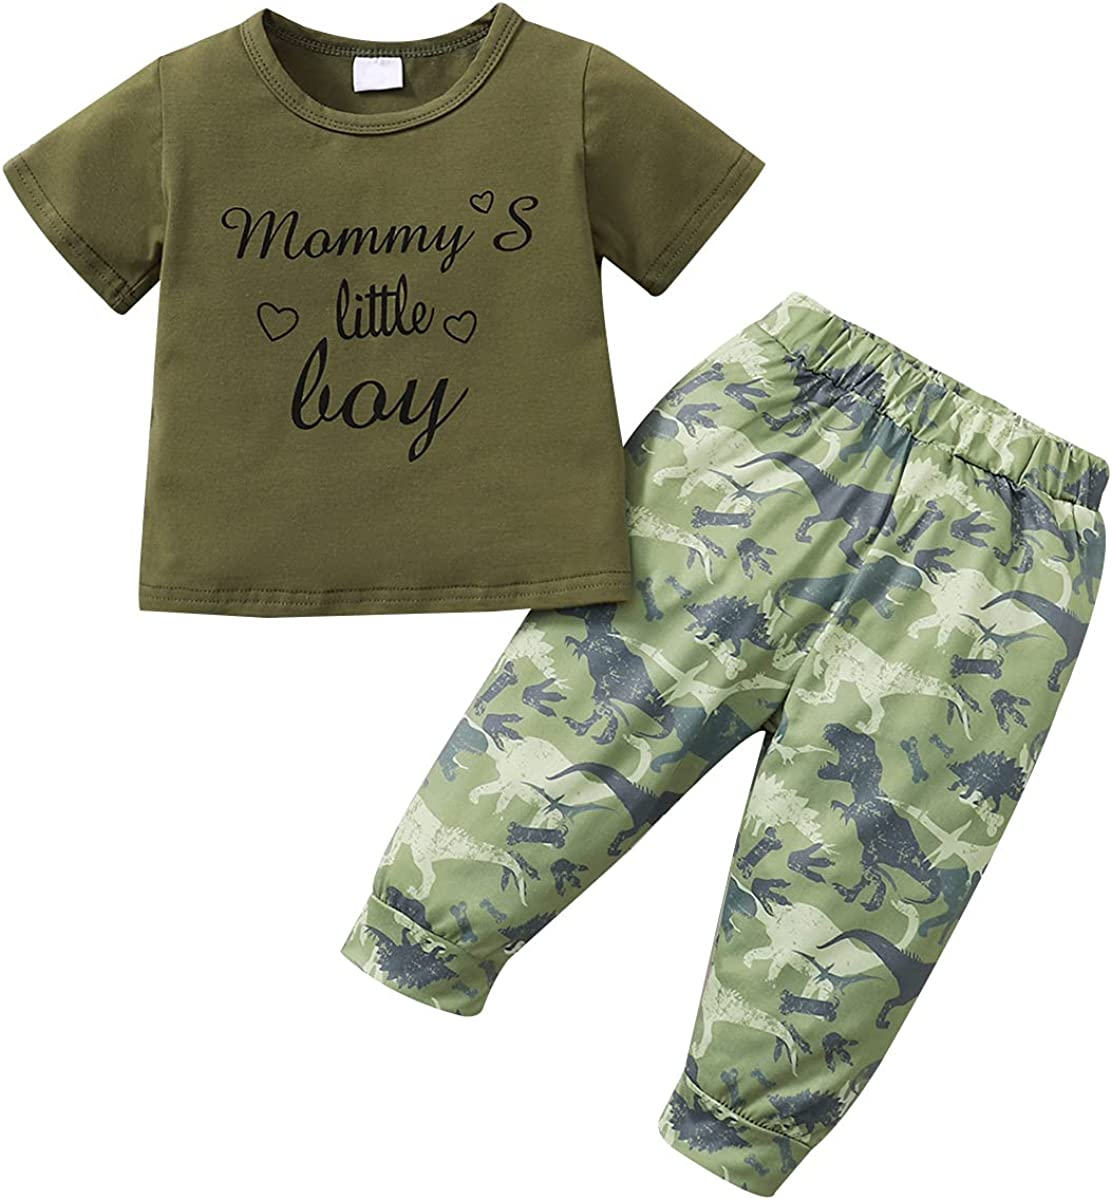 LAPA Baby Boy Clothes Set Infant Toddler Short Sleeve Tops and Pants Outfits Bodysuit Jumpsuit